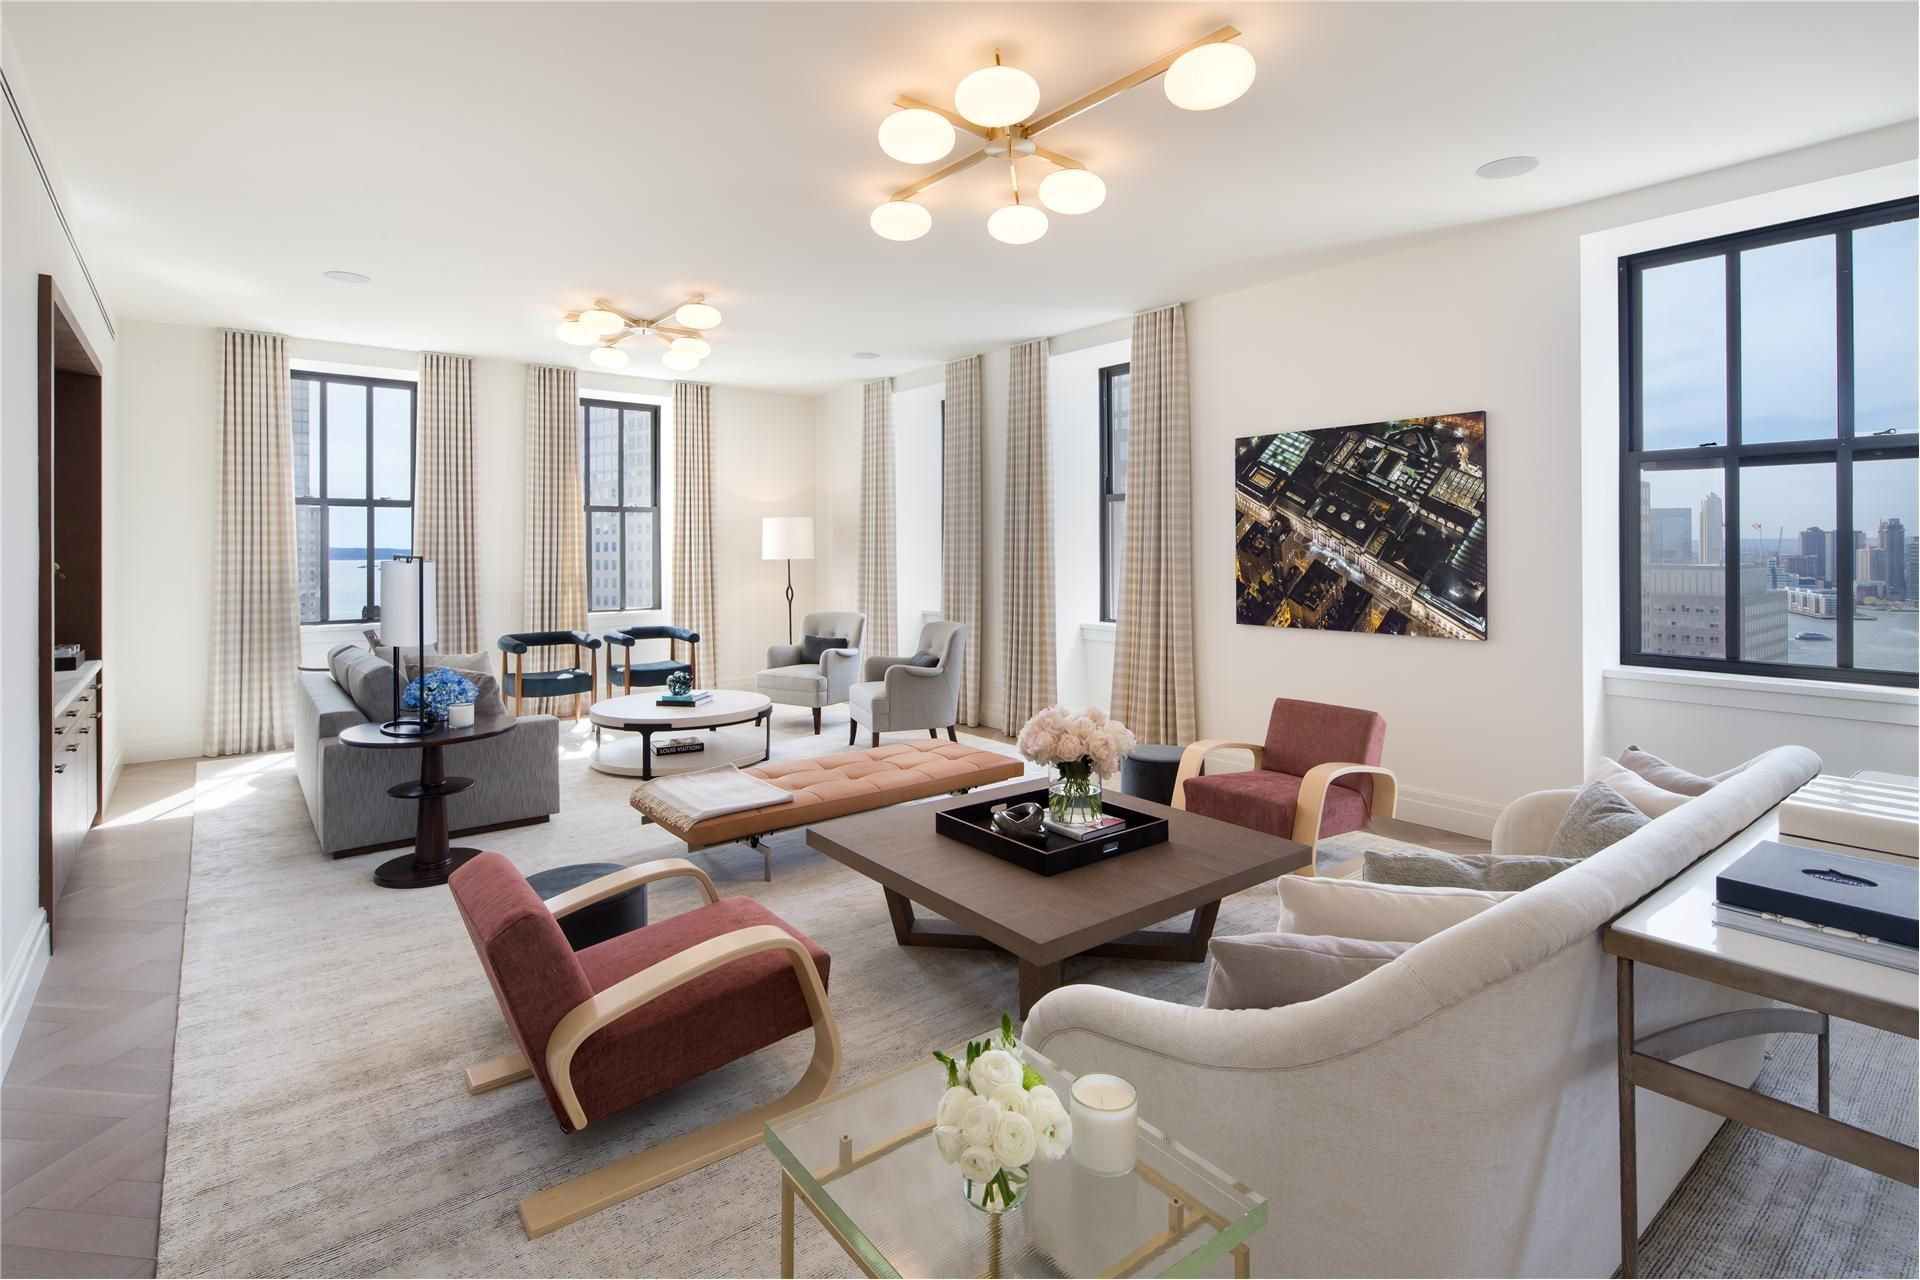 Photos Maps Description For 100 Barclay Street 15k New York Ny Search Homes For Sale Get School District And Home Condominium Interior White Oak Floors